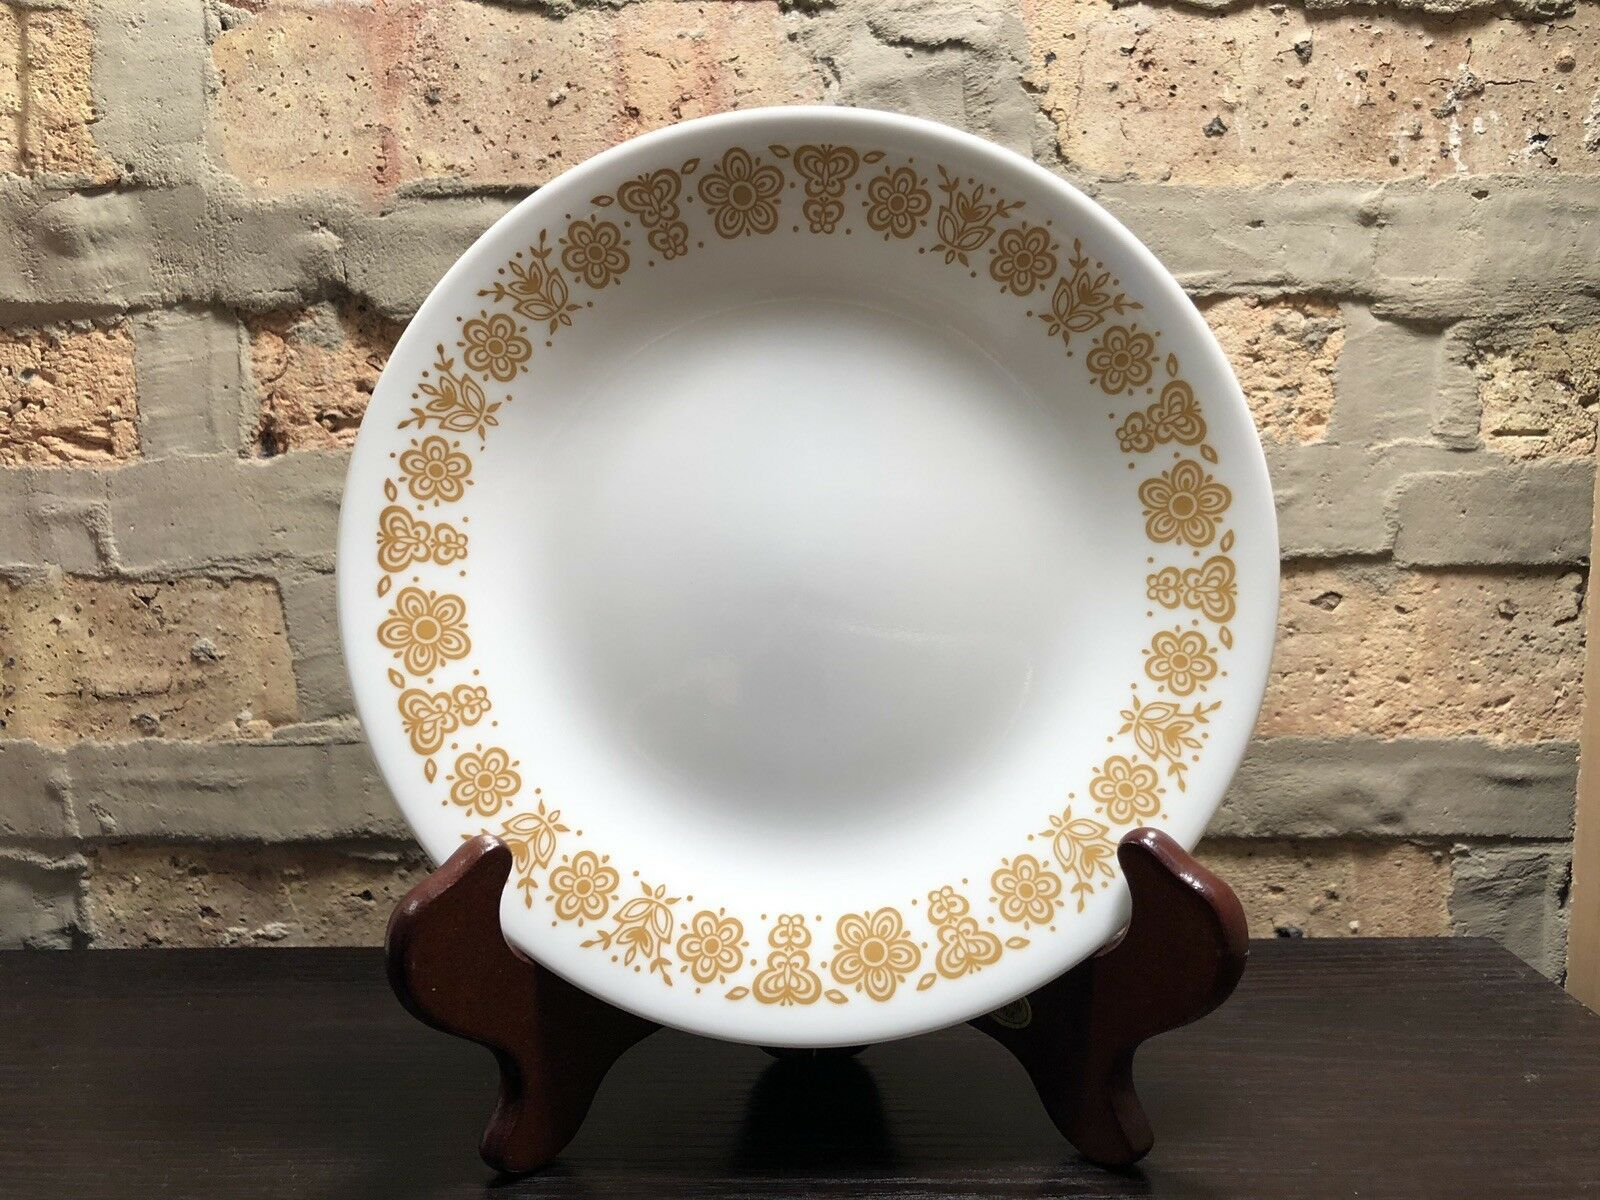 Corelle Gold Butterfly Bread Butter Dessert Plate White By Corning Ware 7 inch - $6.00